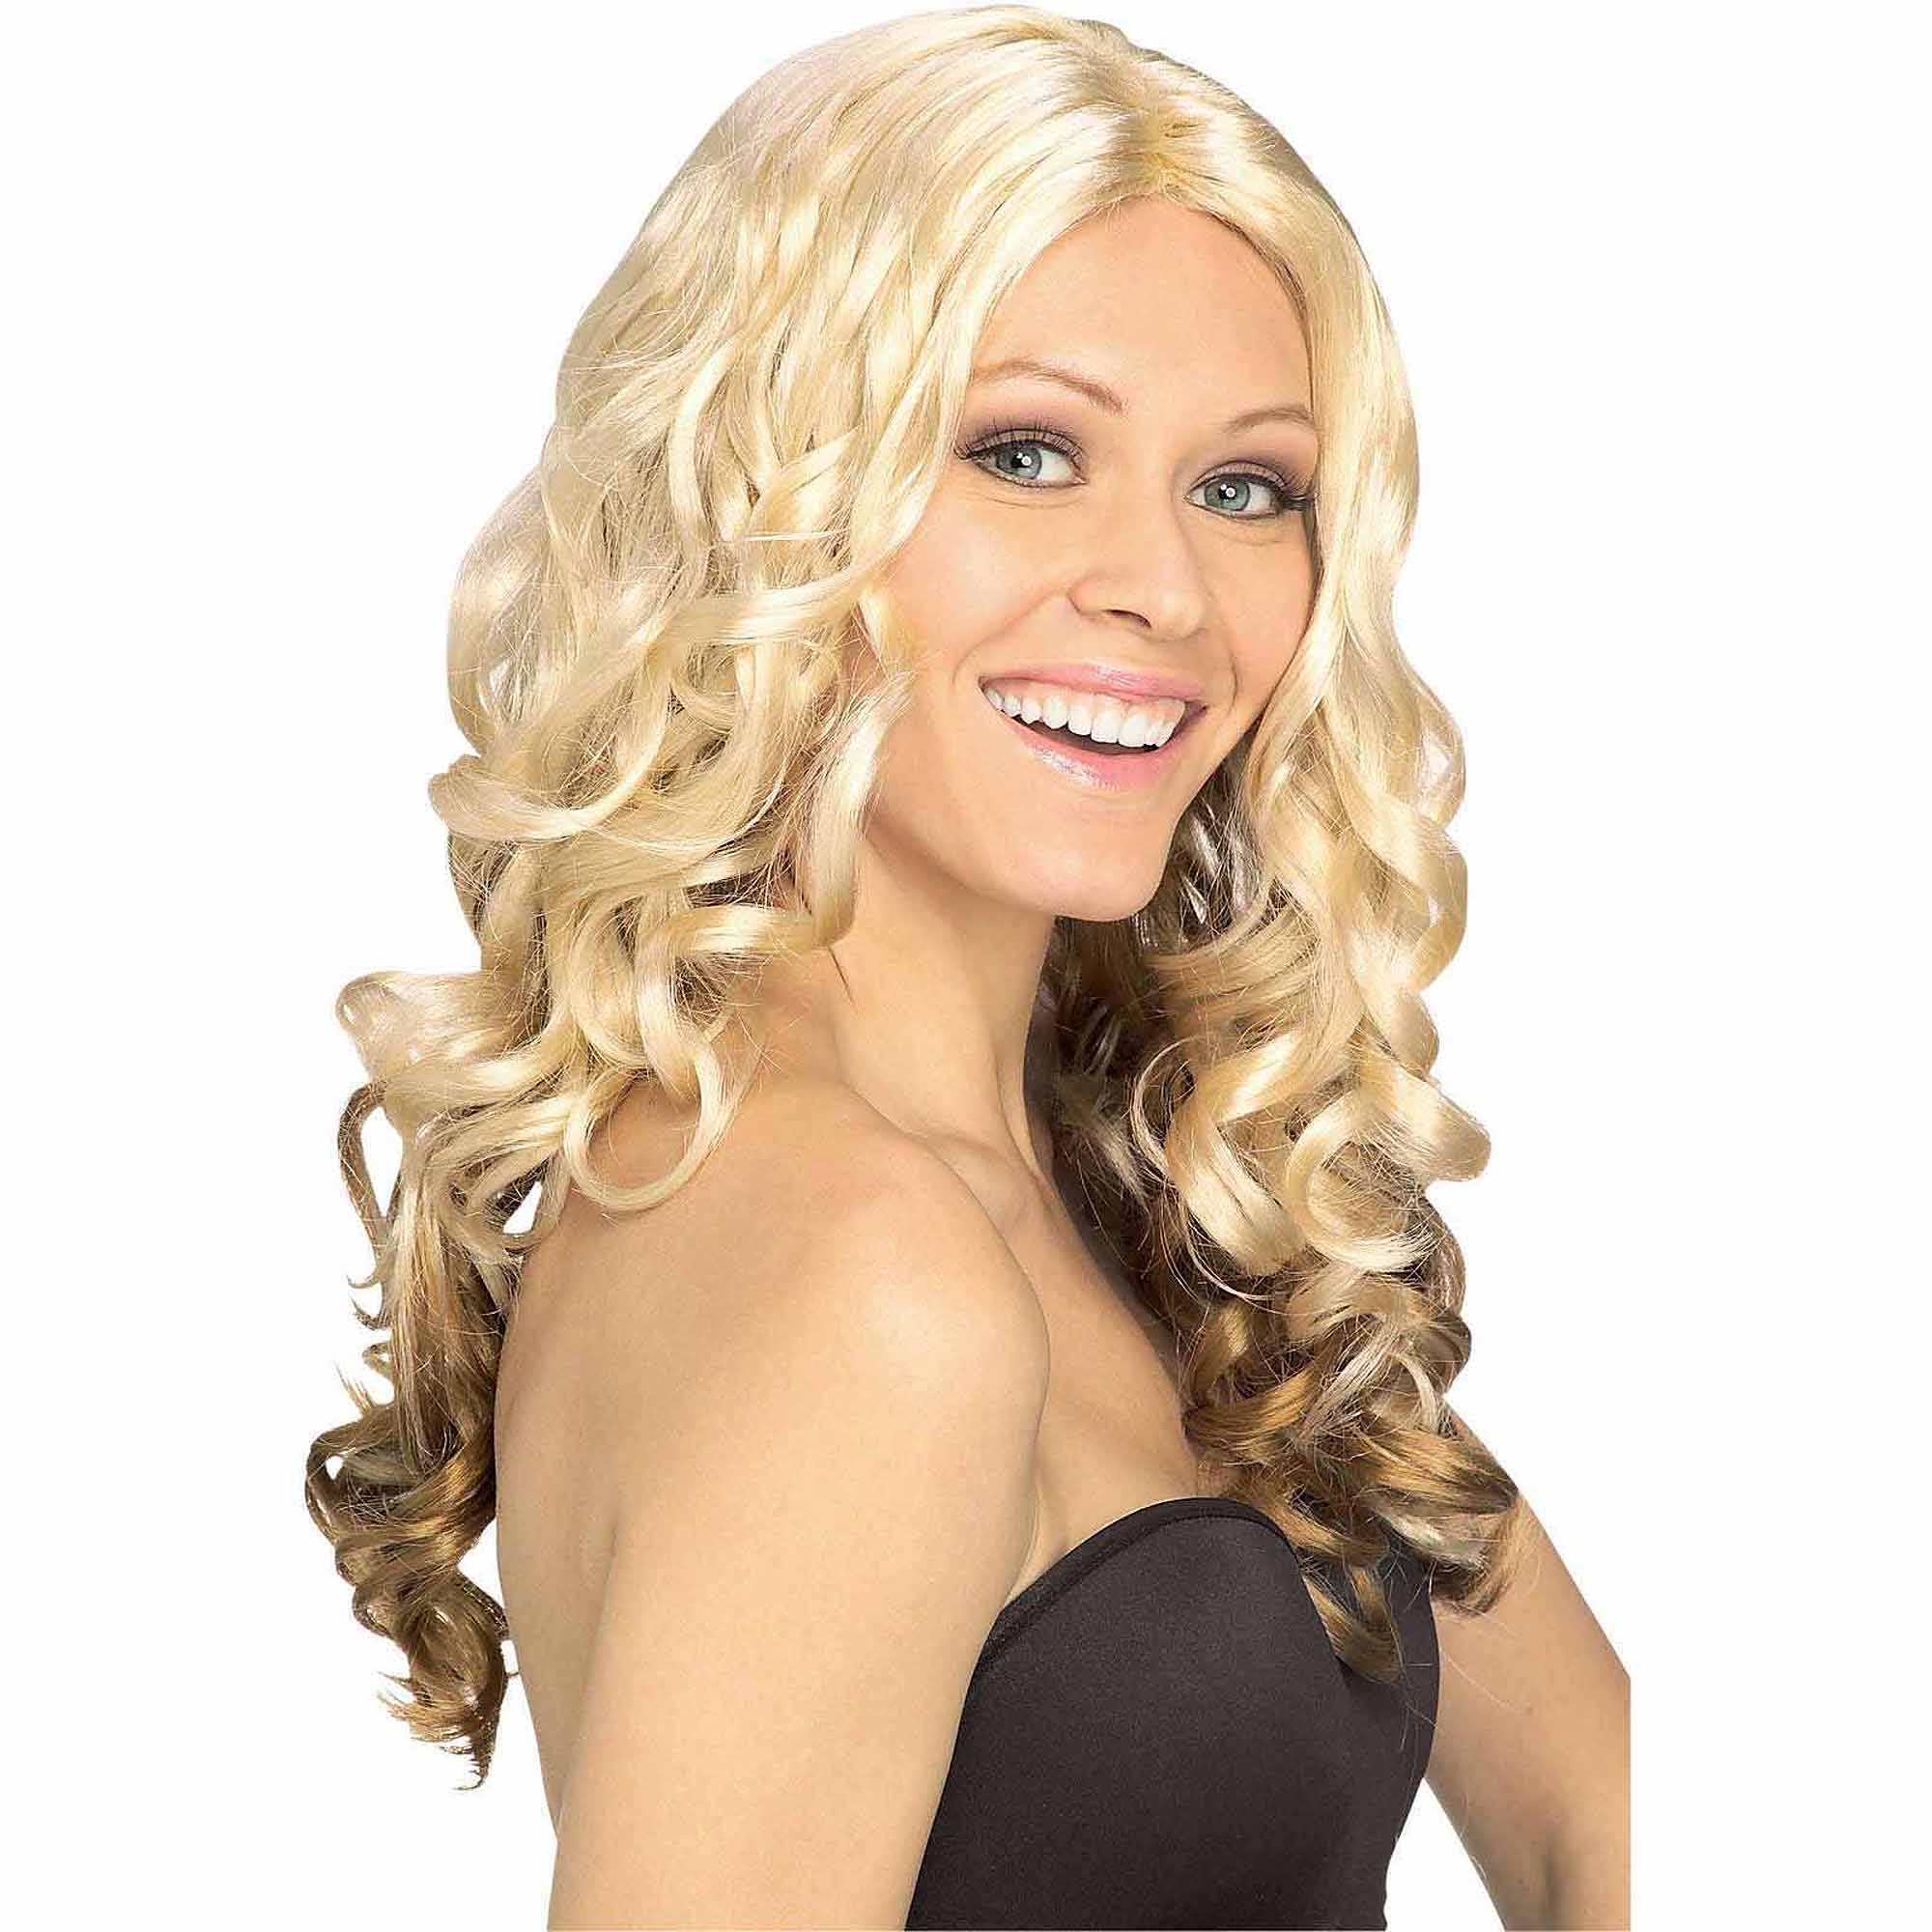 Goldilocks Wig Adult Halloween Accessory